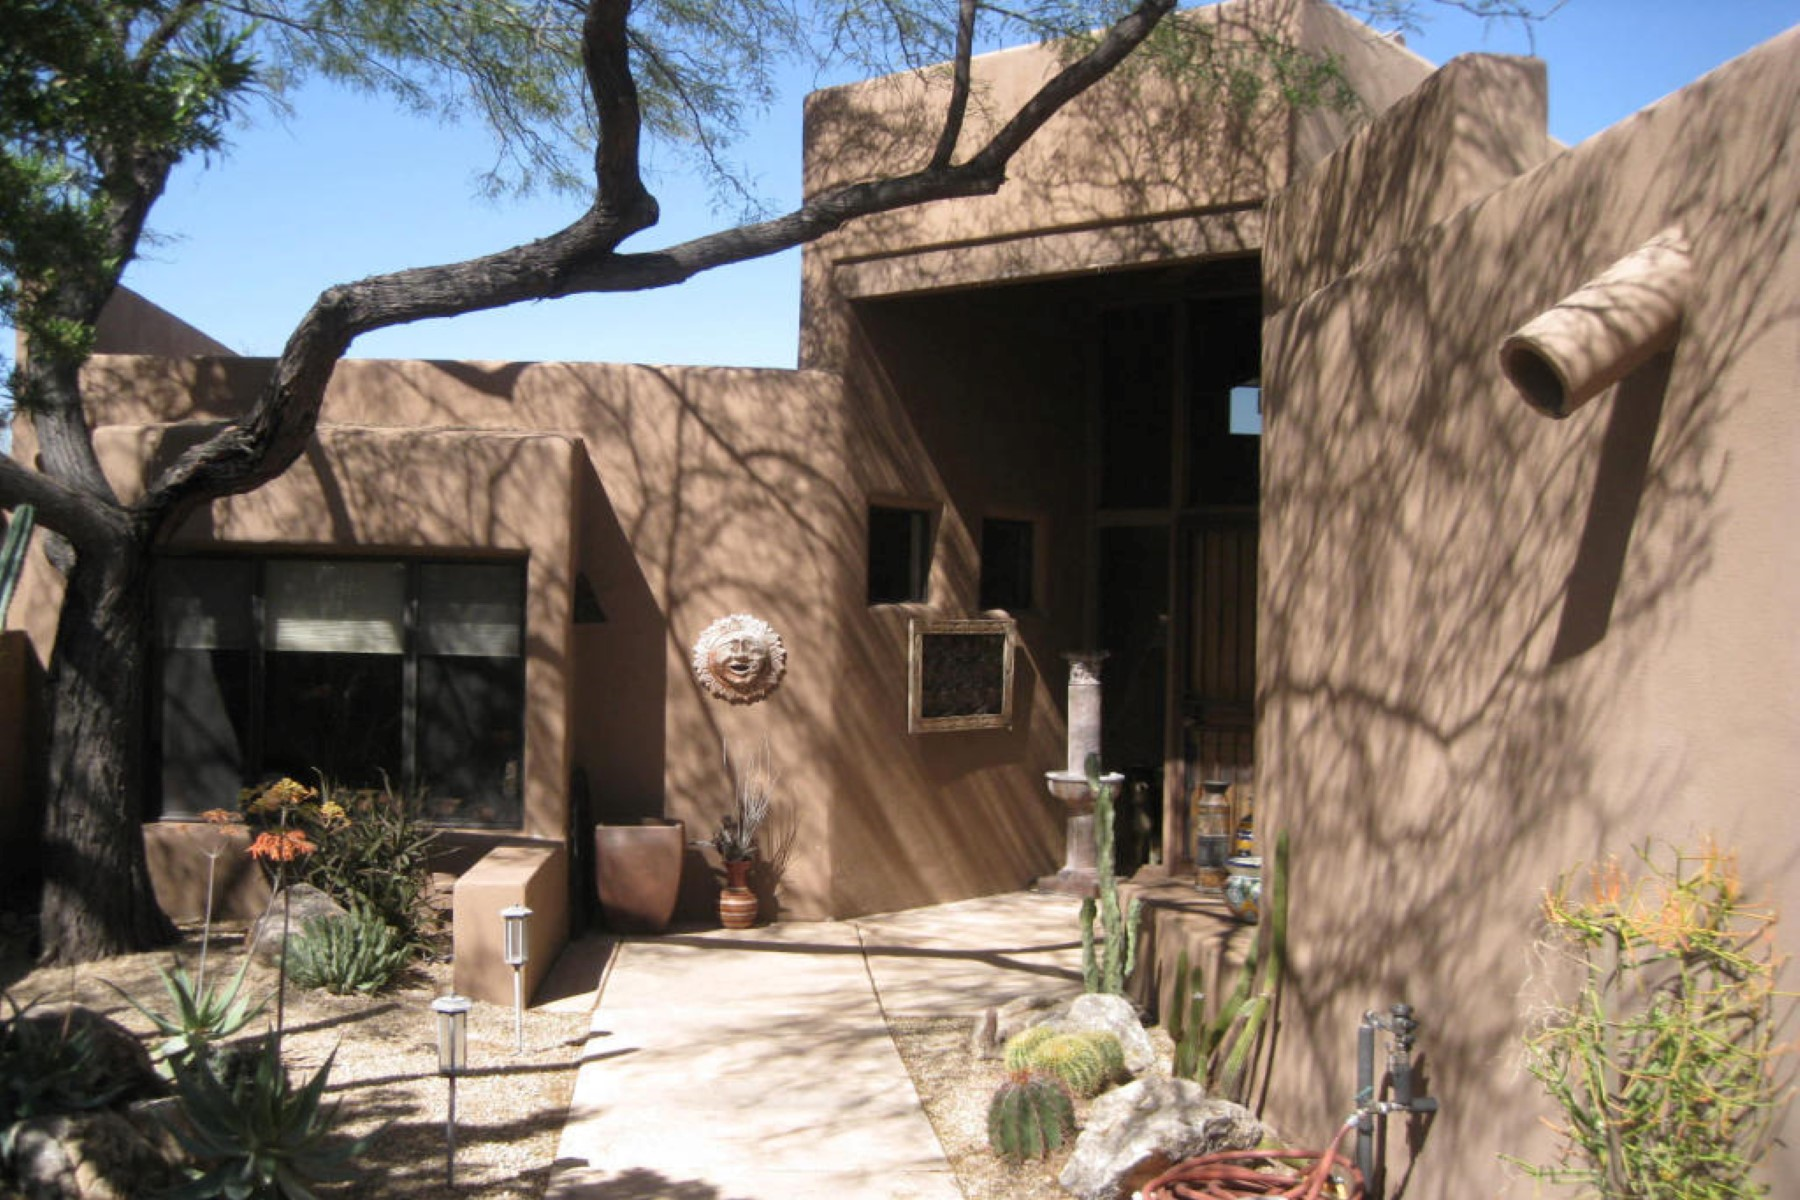 Single Family Home for Sale at Upgraded Skyranch Southwest townhome 8502 E CAVE CRK RD 44 Carefree, Arizona 85377 United States